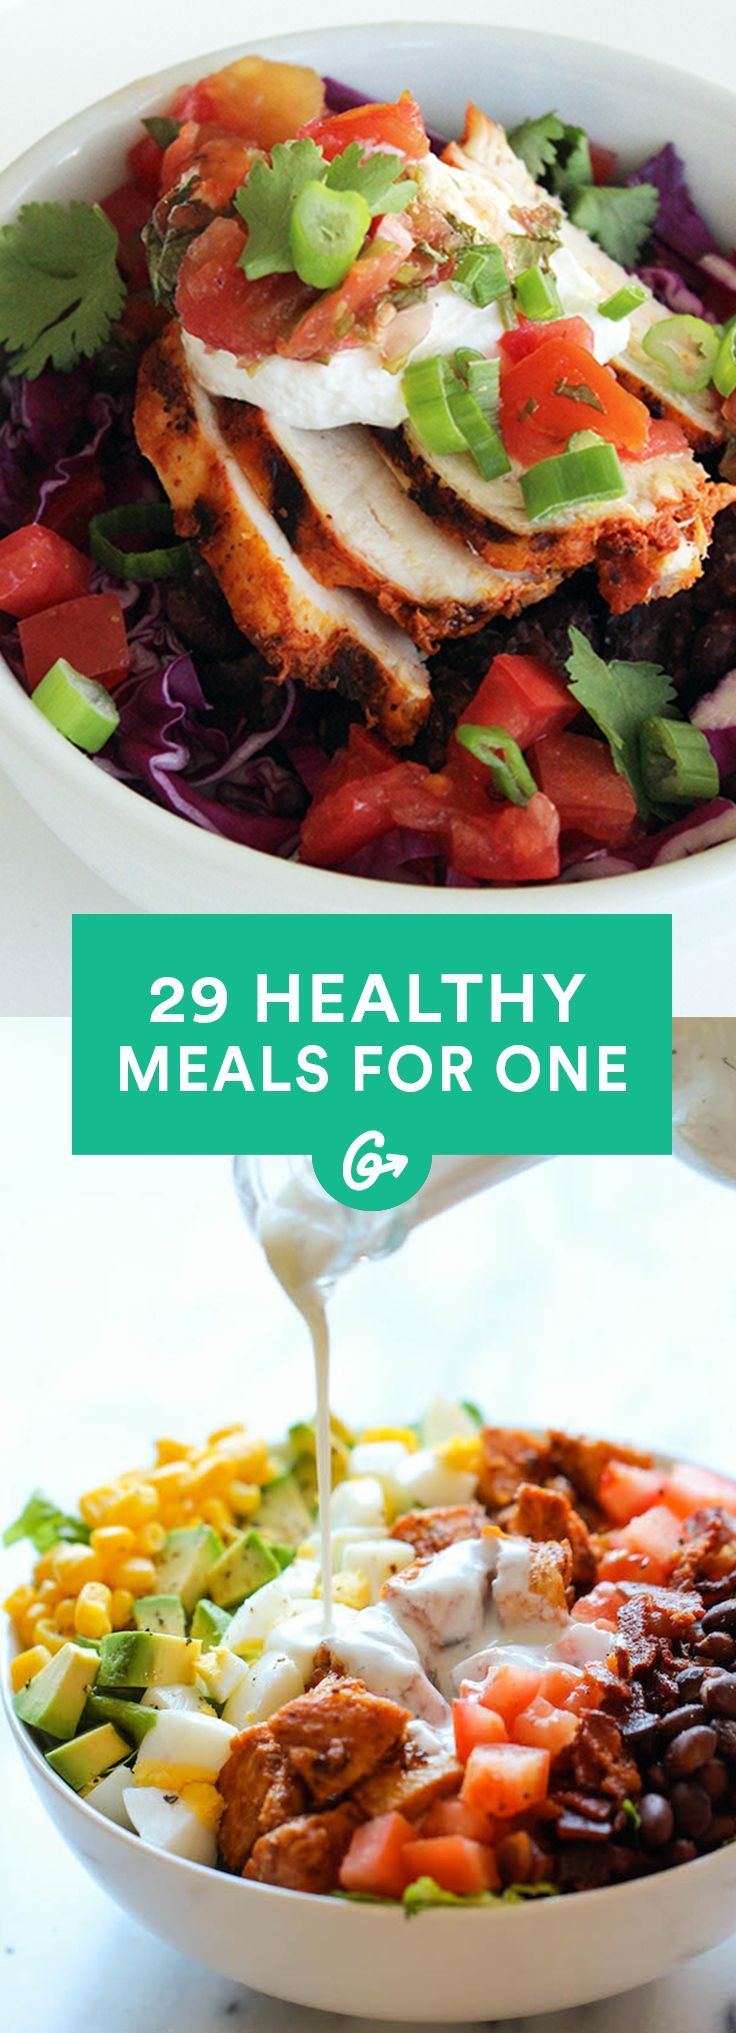 Healthy Cookout Recipes: Cooking For One: 25 Insanely Easy, Healthy Meals You Can